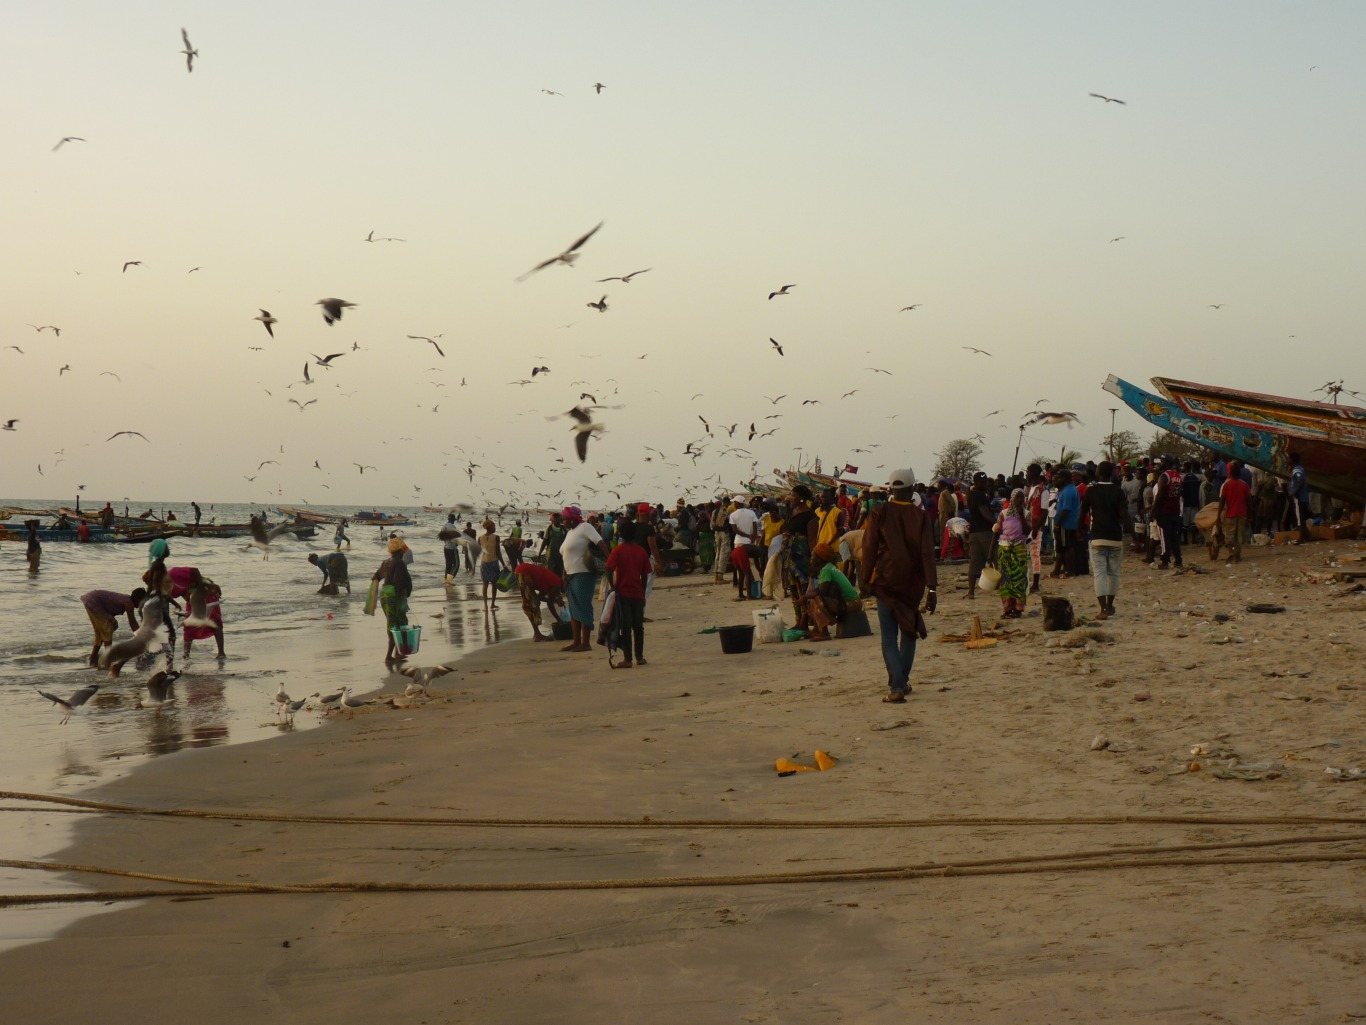 Gambia227